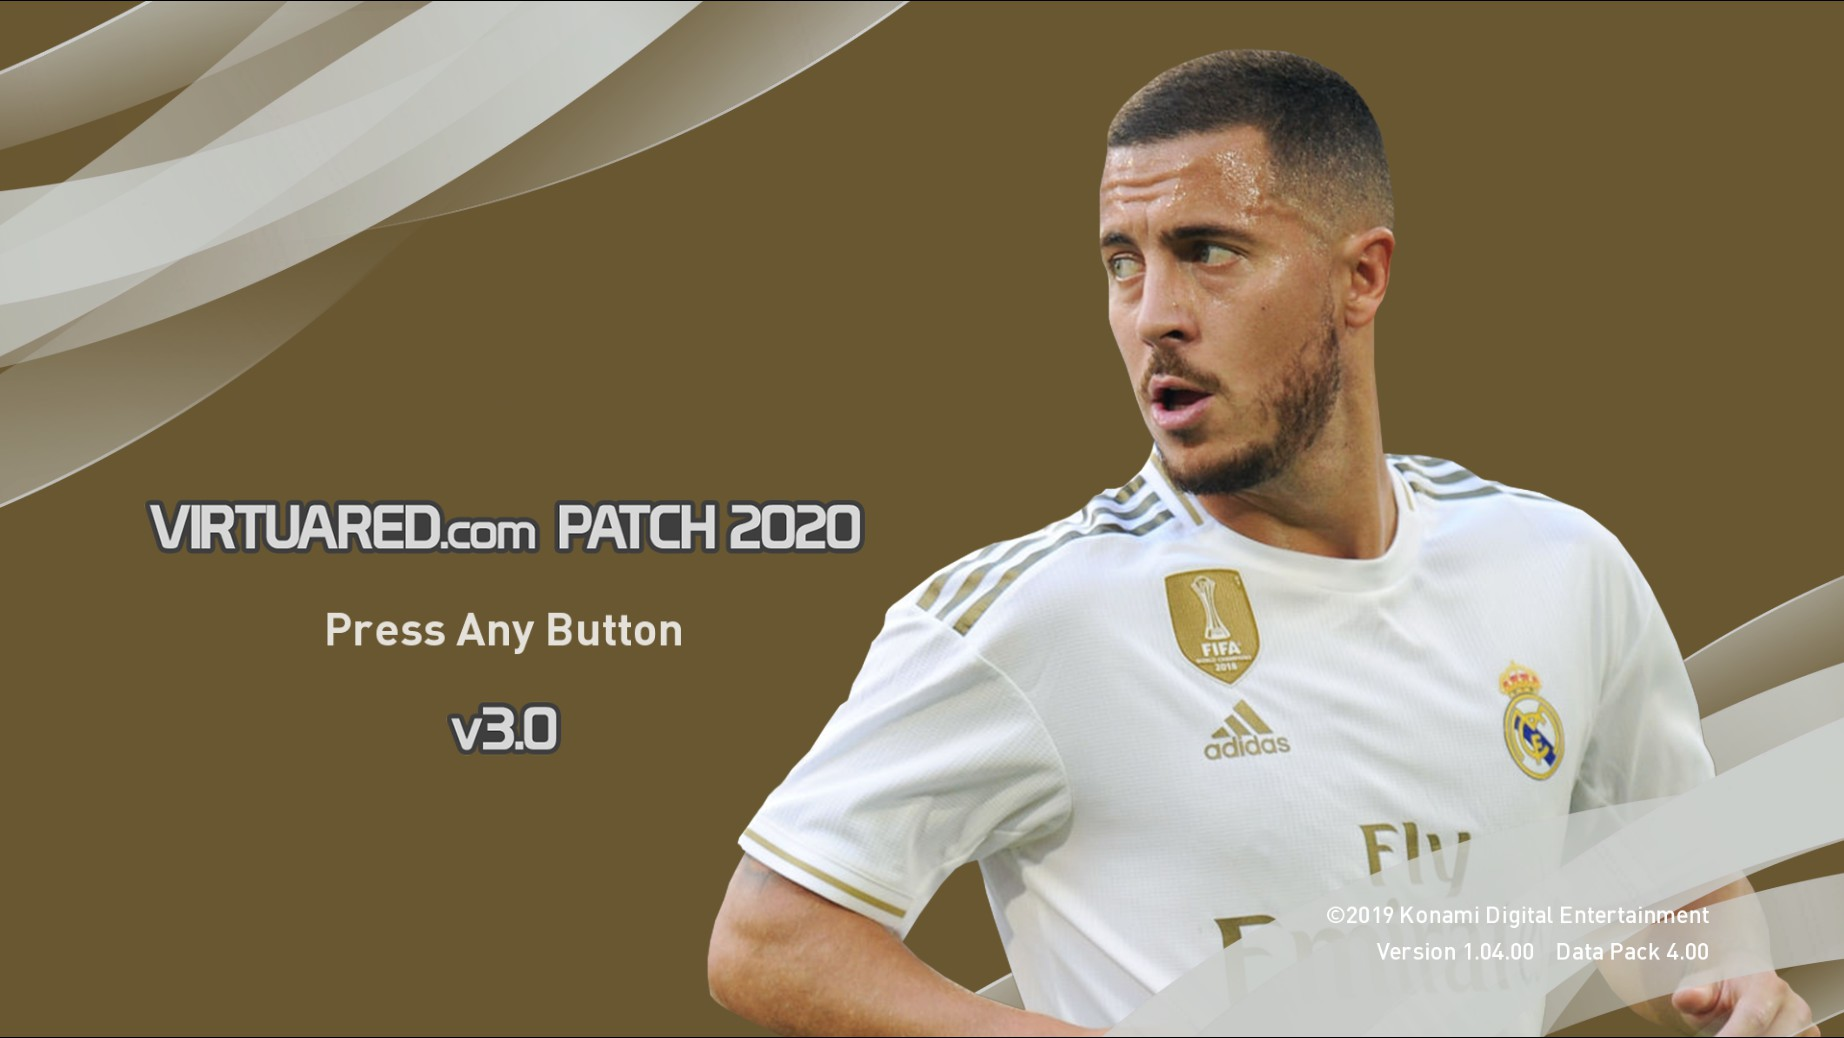 VirtuaRED.com Patch 2020 v3.0 ¡ya disponible!